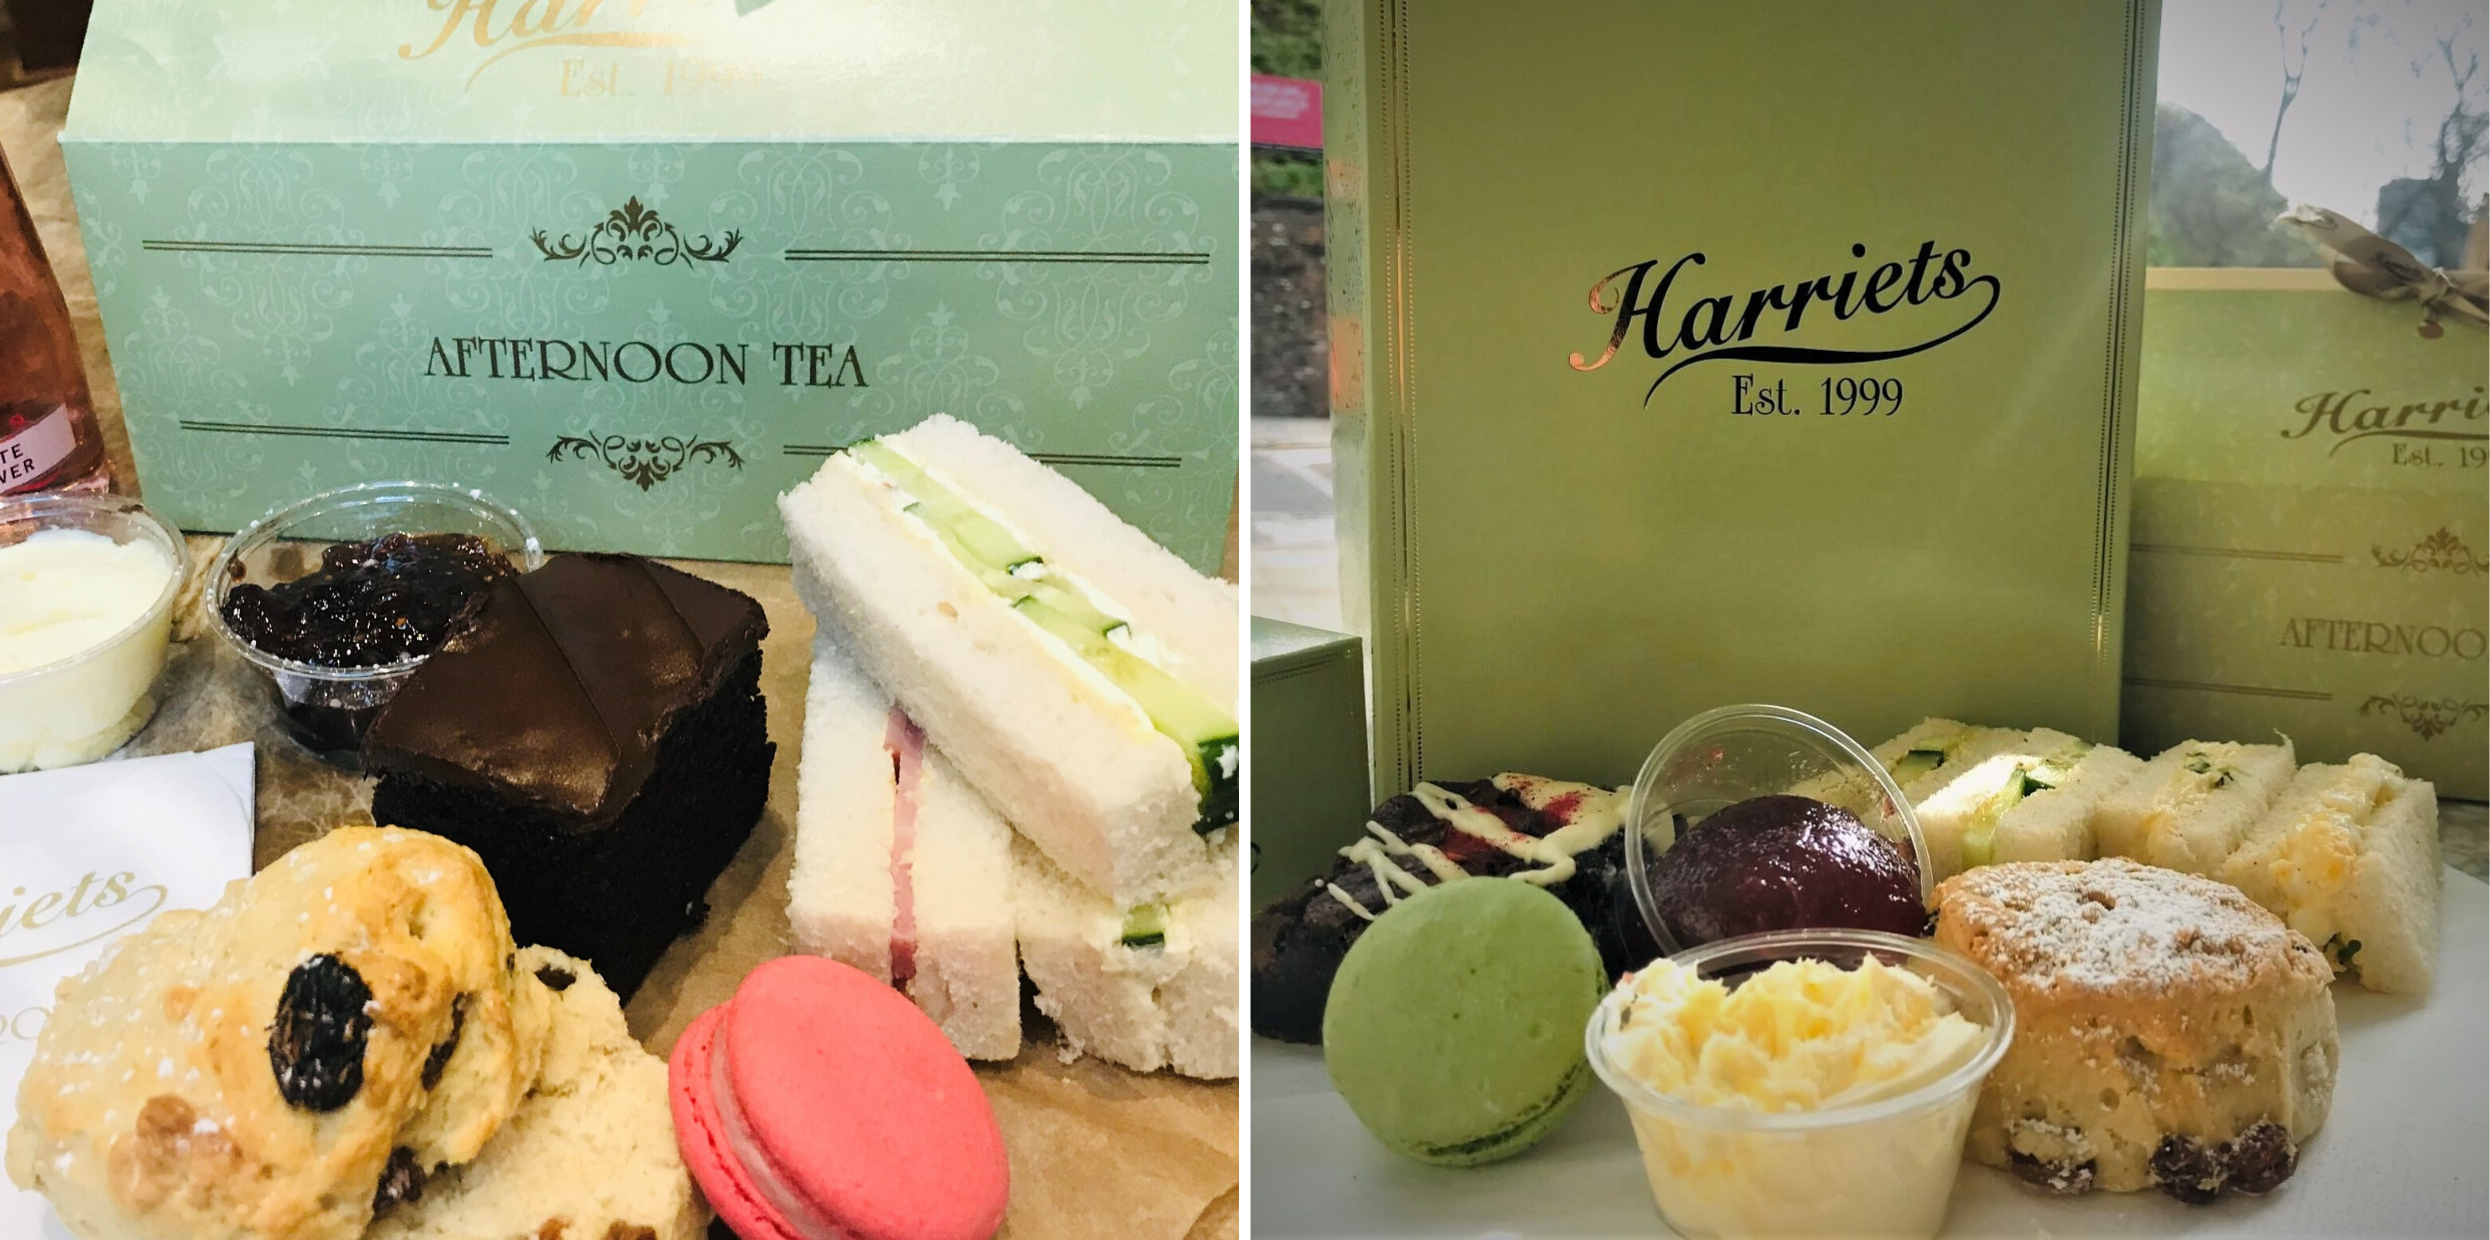 Harriets Afternoon Tea Delivery Boxes